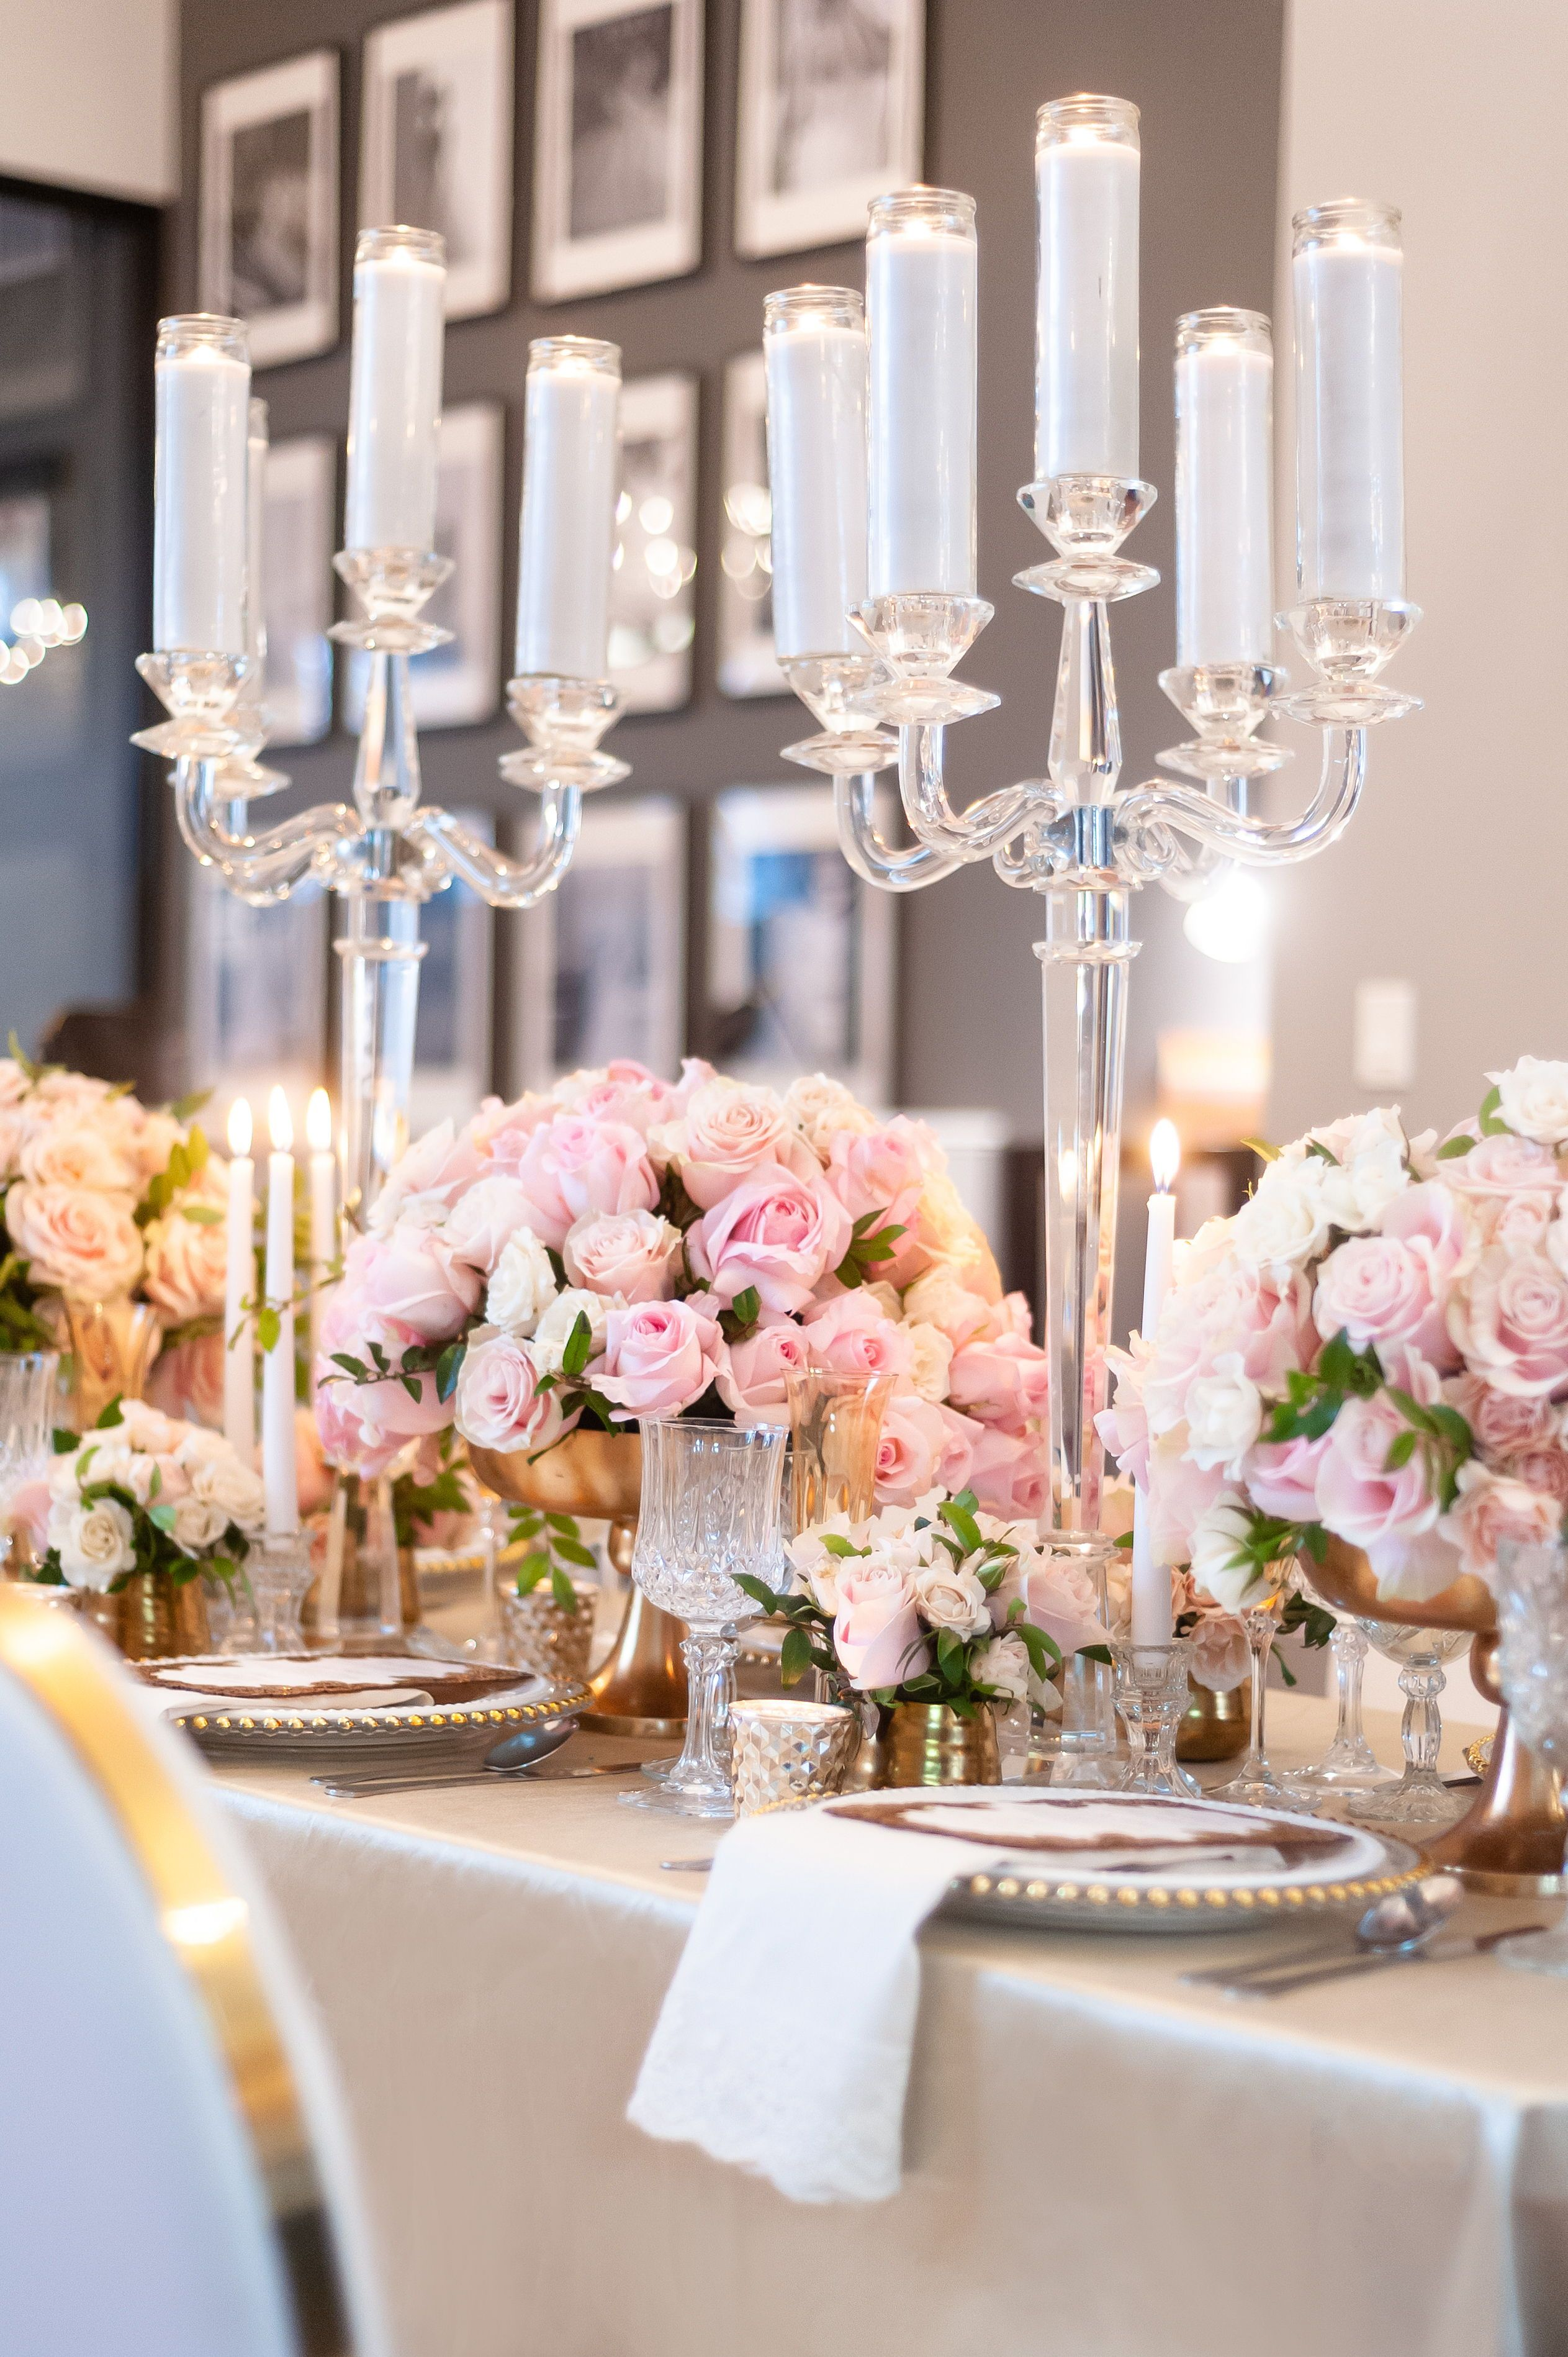 Long wedding table decor with low centerpieces, pink flowers and roses, and crystal candelabras | New Jersey Top Wedding Planner | Party Planner | Floral Design | JP Events And Design#table #tablesetting #tablescape #tabledecor #centerpieceideas #weddingdecor #weddingdecorations